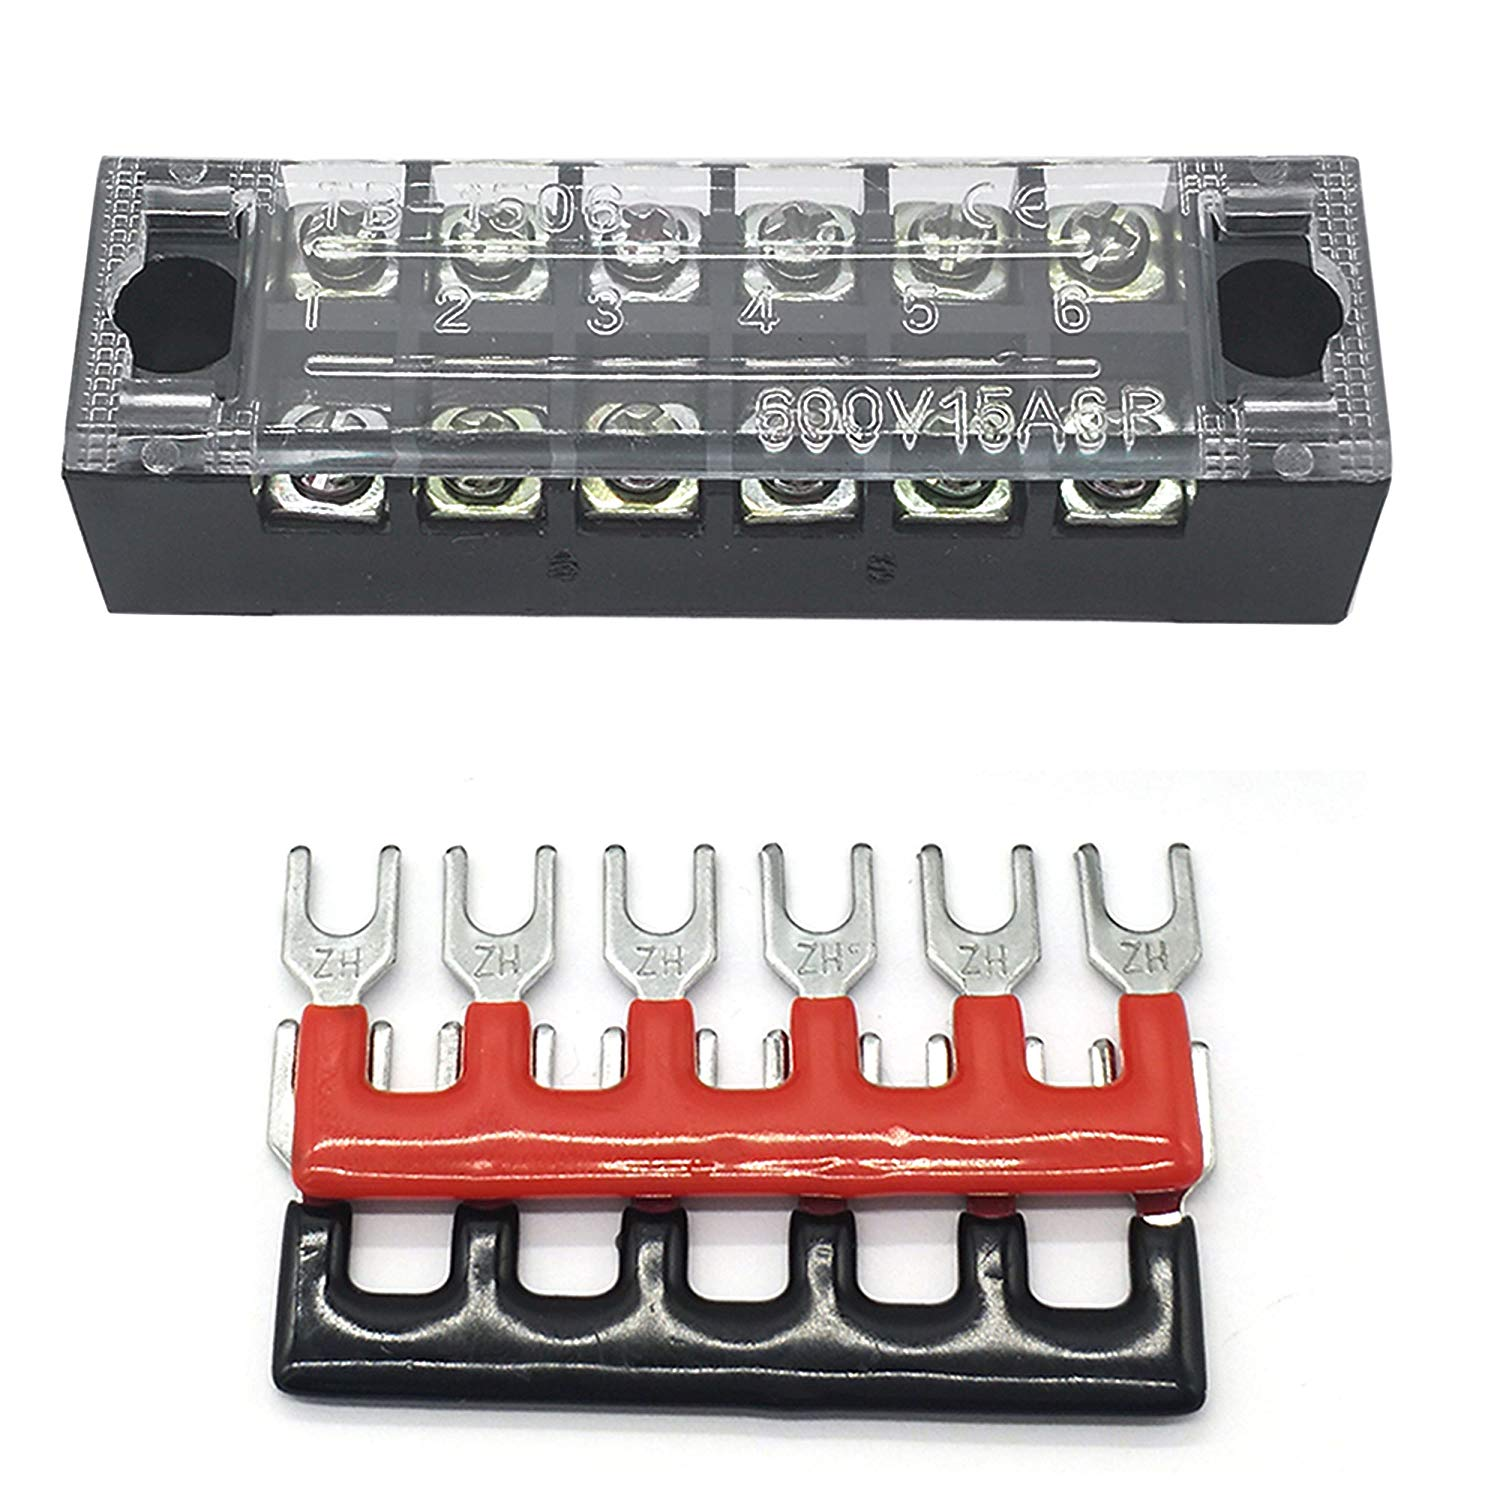 IZTOSS 6 Positions 600V\15Amp terminal block kits Terminals Included Red and Black 2 Pcs